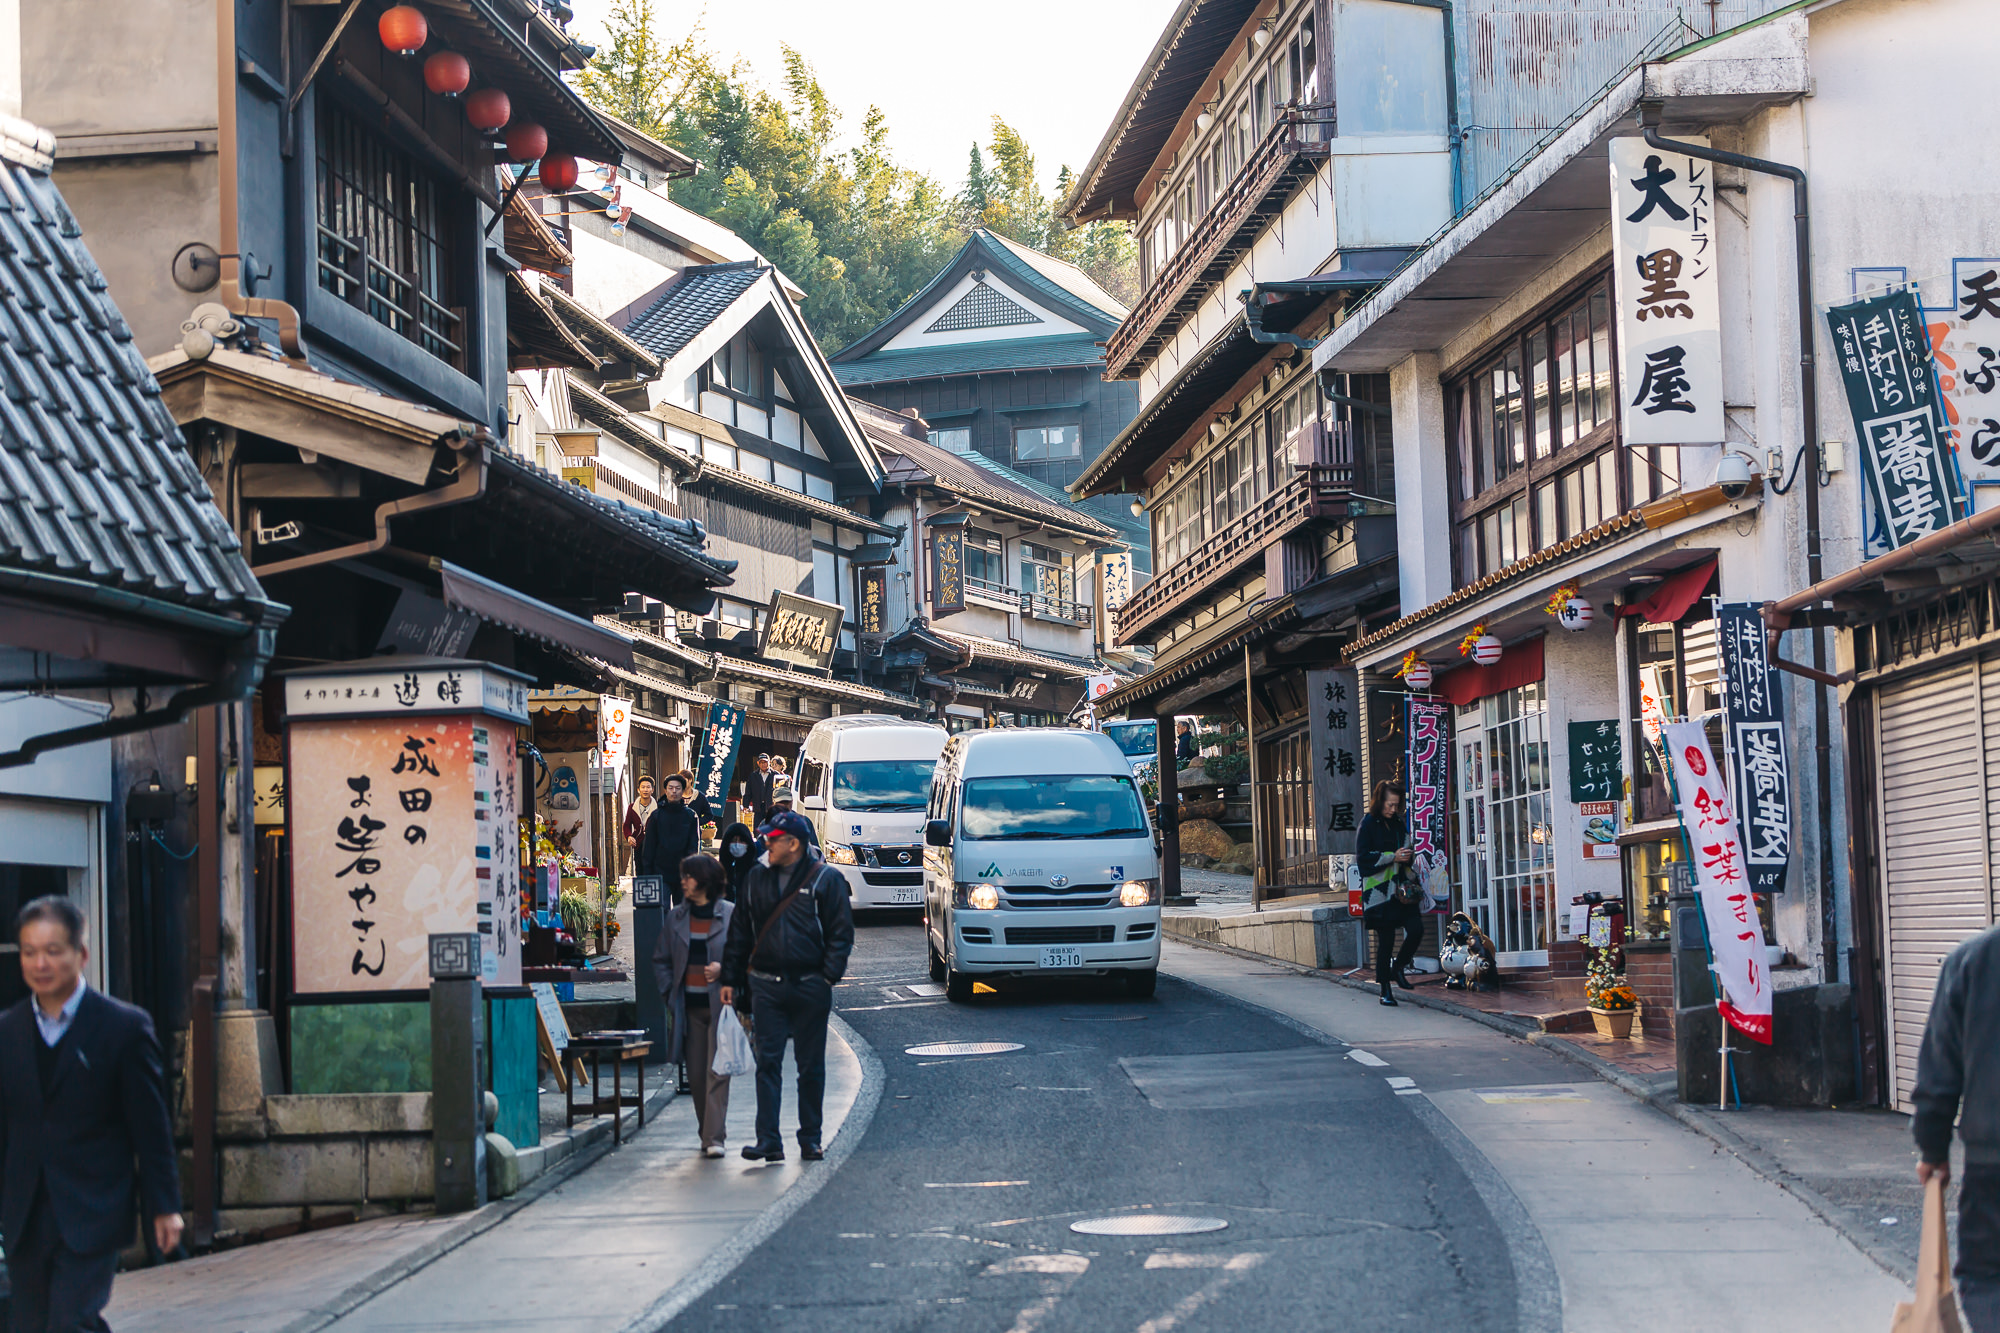 The street that leads to   Narita Temple .